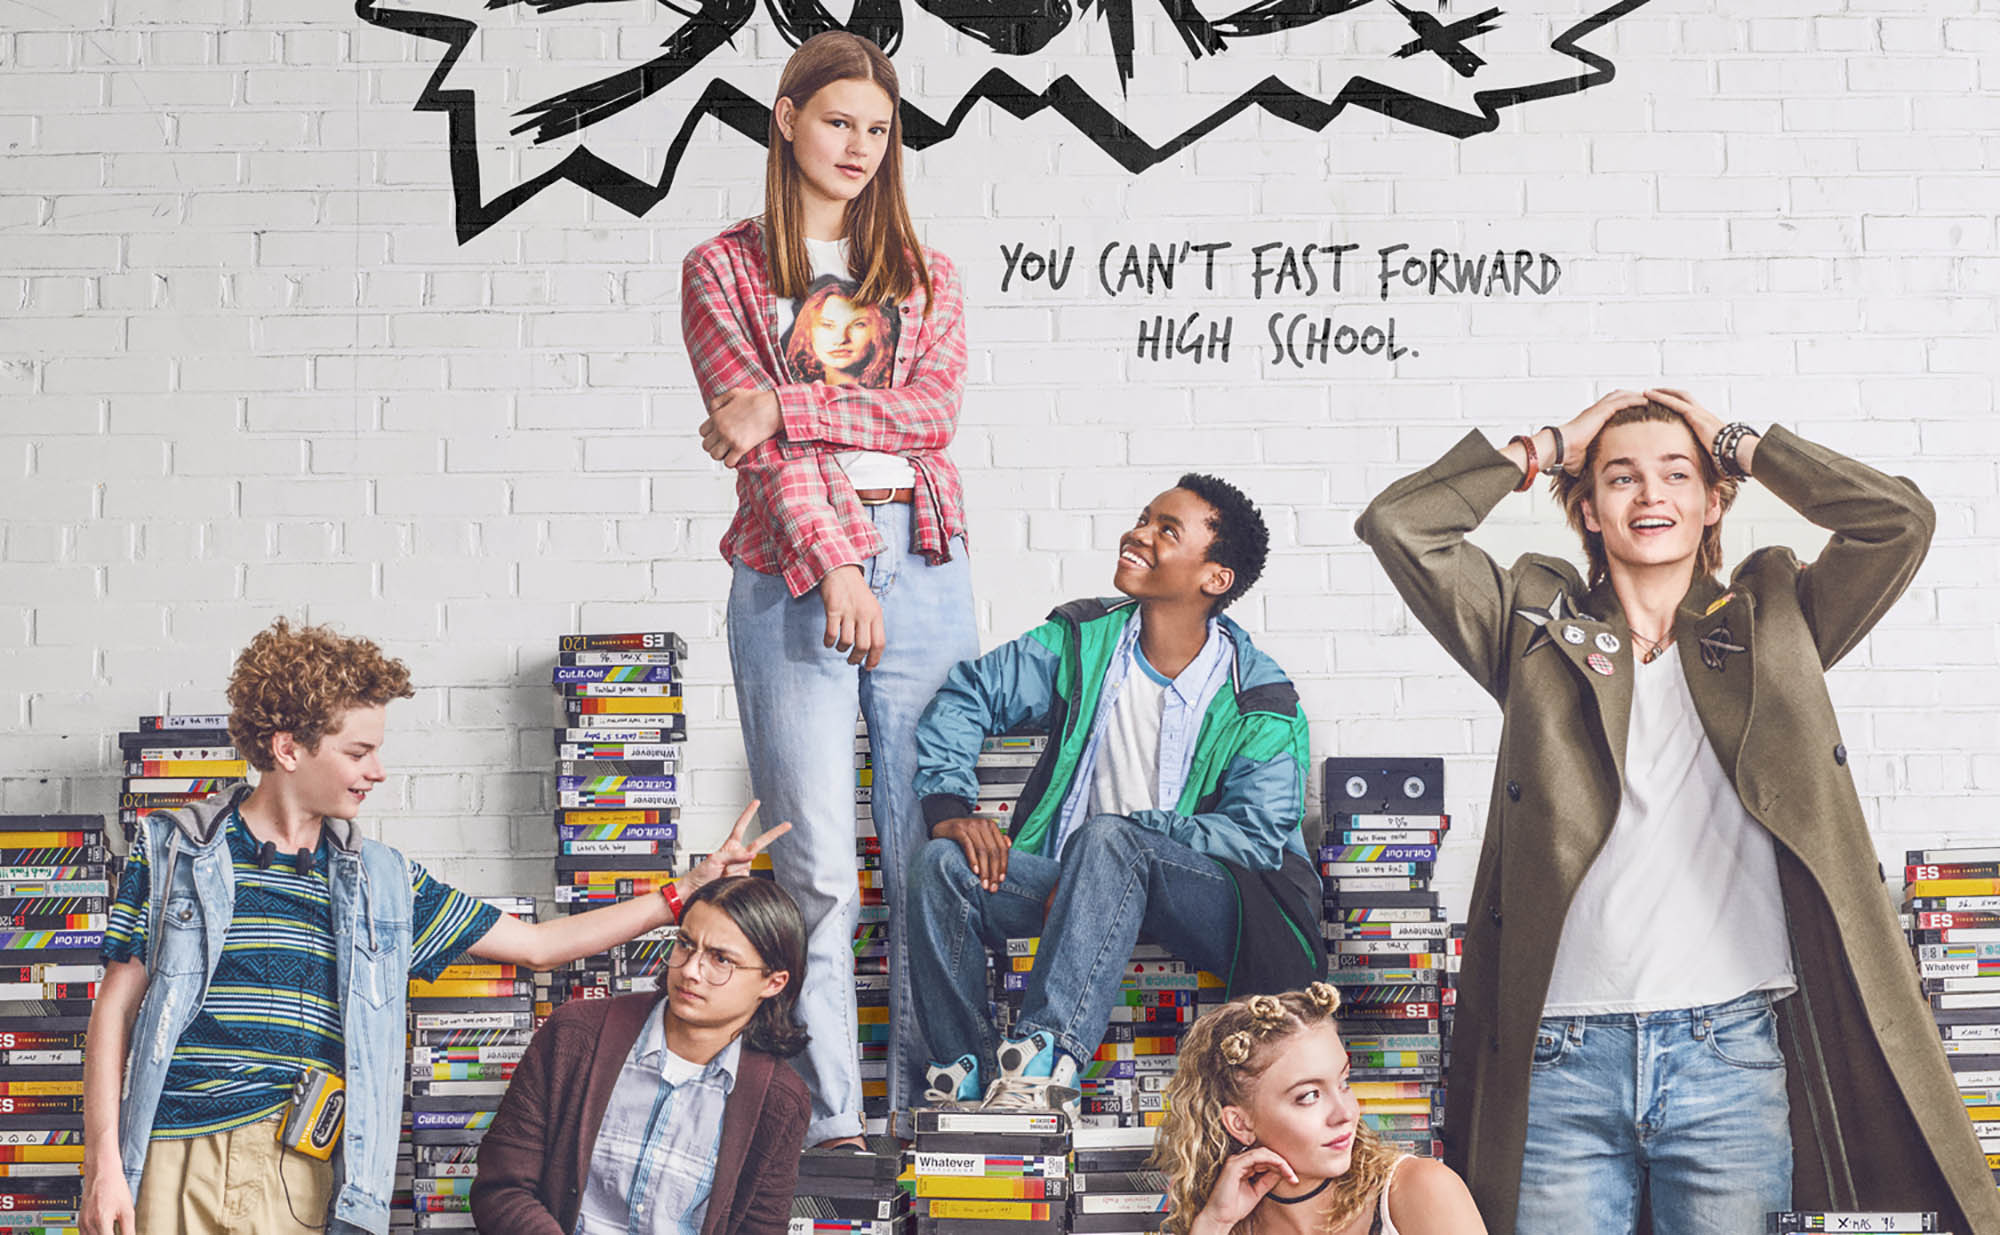 A quirky coming of age story that follows two groups of high school misfits, 'Everything Sucks!' follows an A/V and drama club who collide in 1996 Oregon.